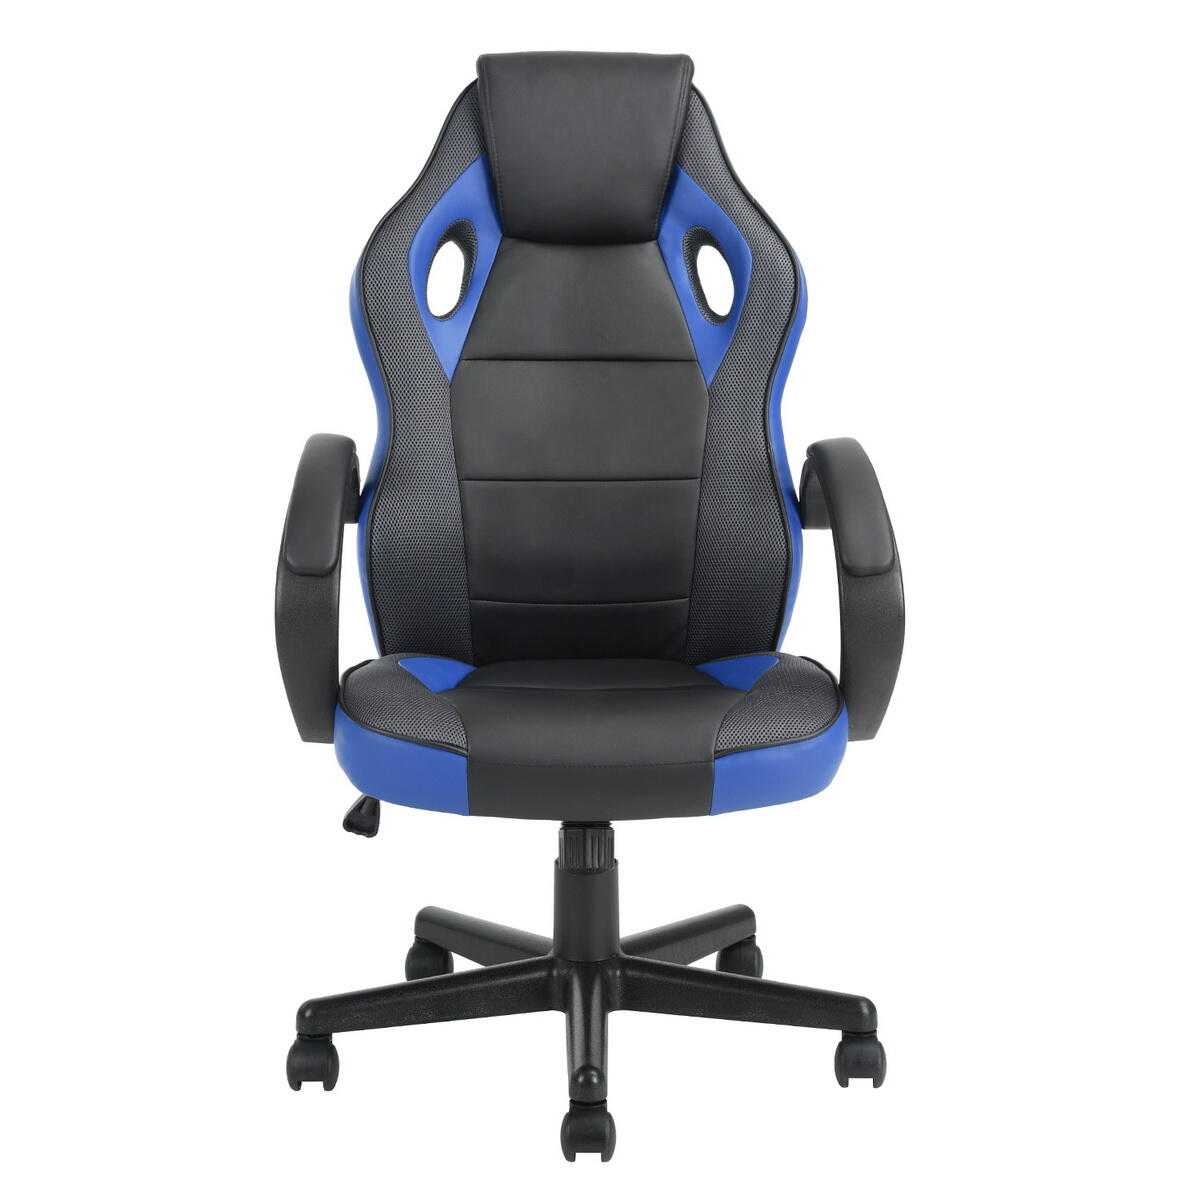 FurnitureR Tunney PU Racing Gaming Chair